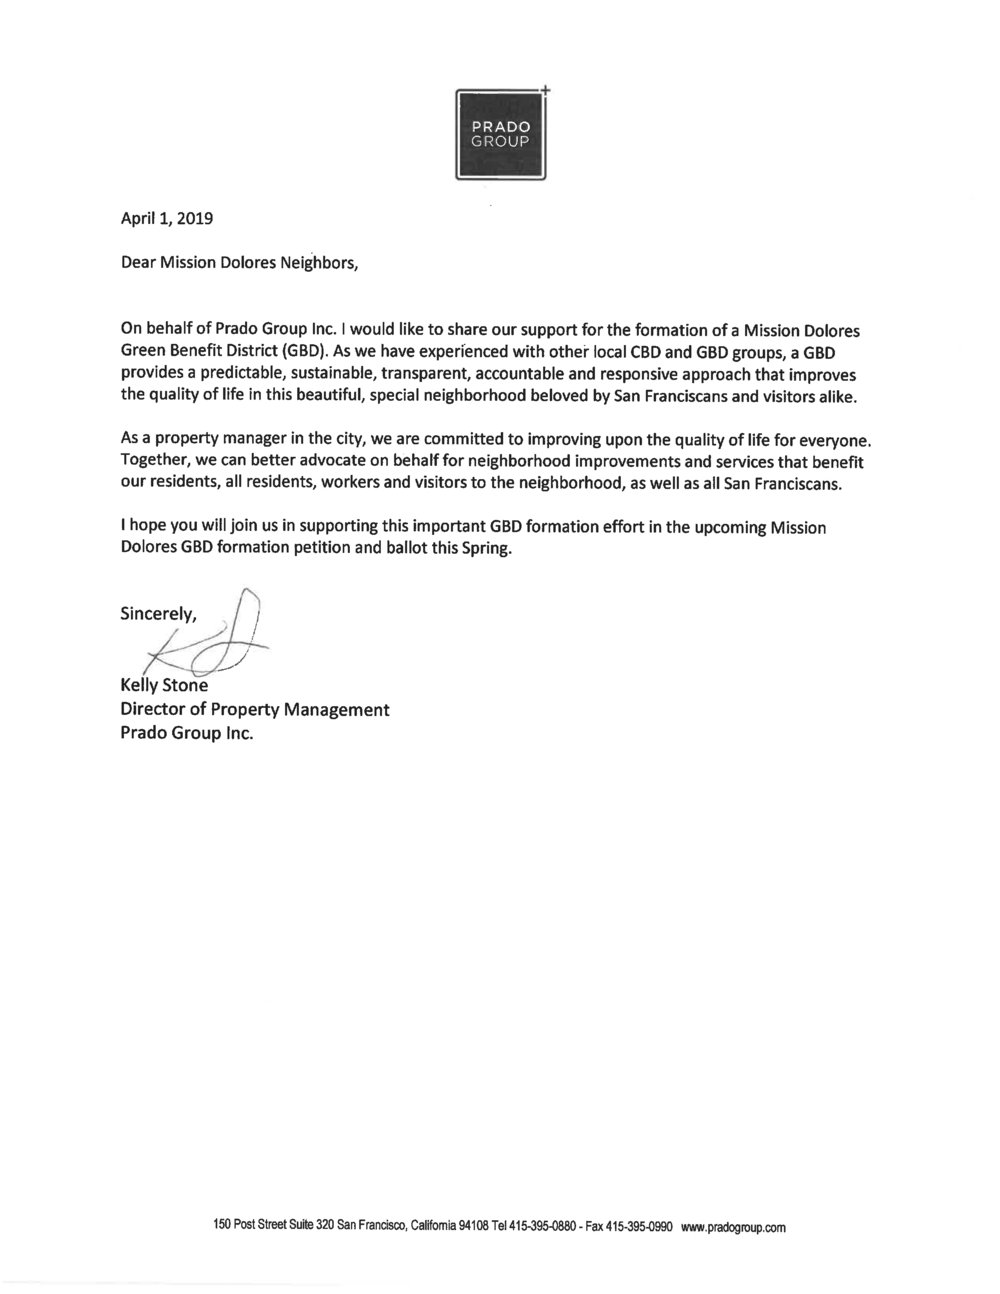 Prado Group Letter of Support.png